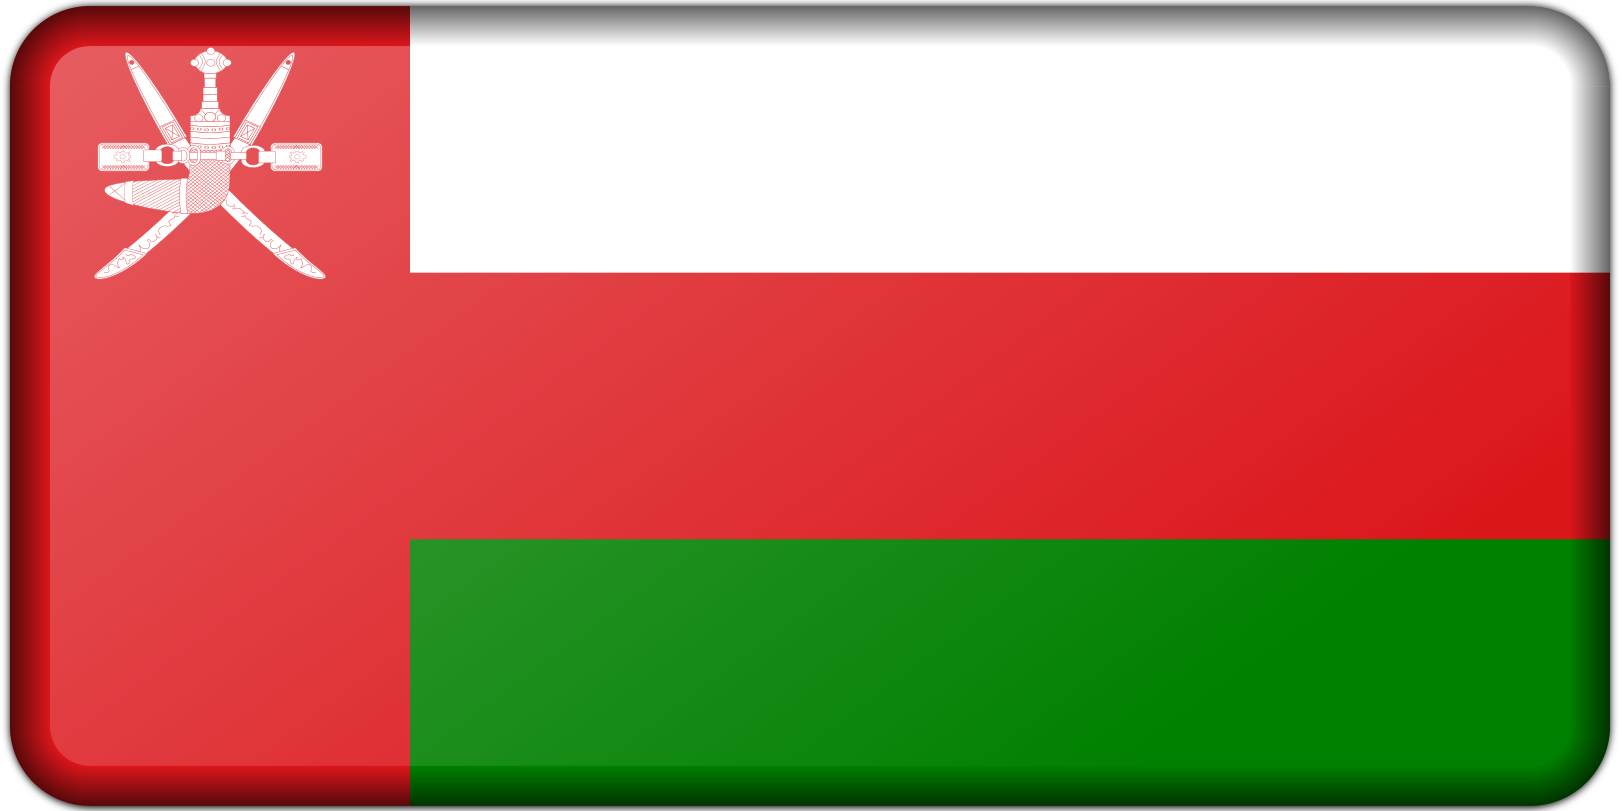 Oman Solidifies Plans for 1.6M-Ton Ethylene Project